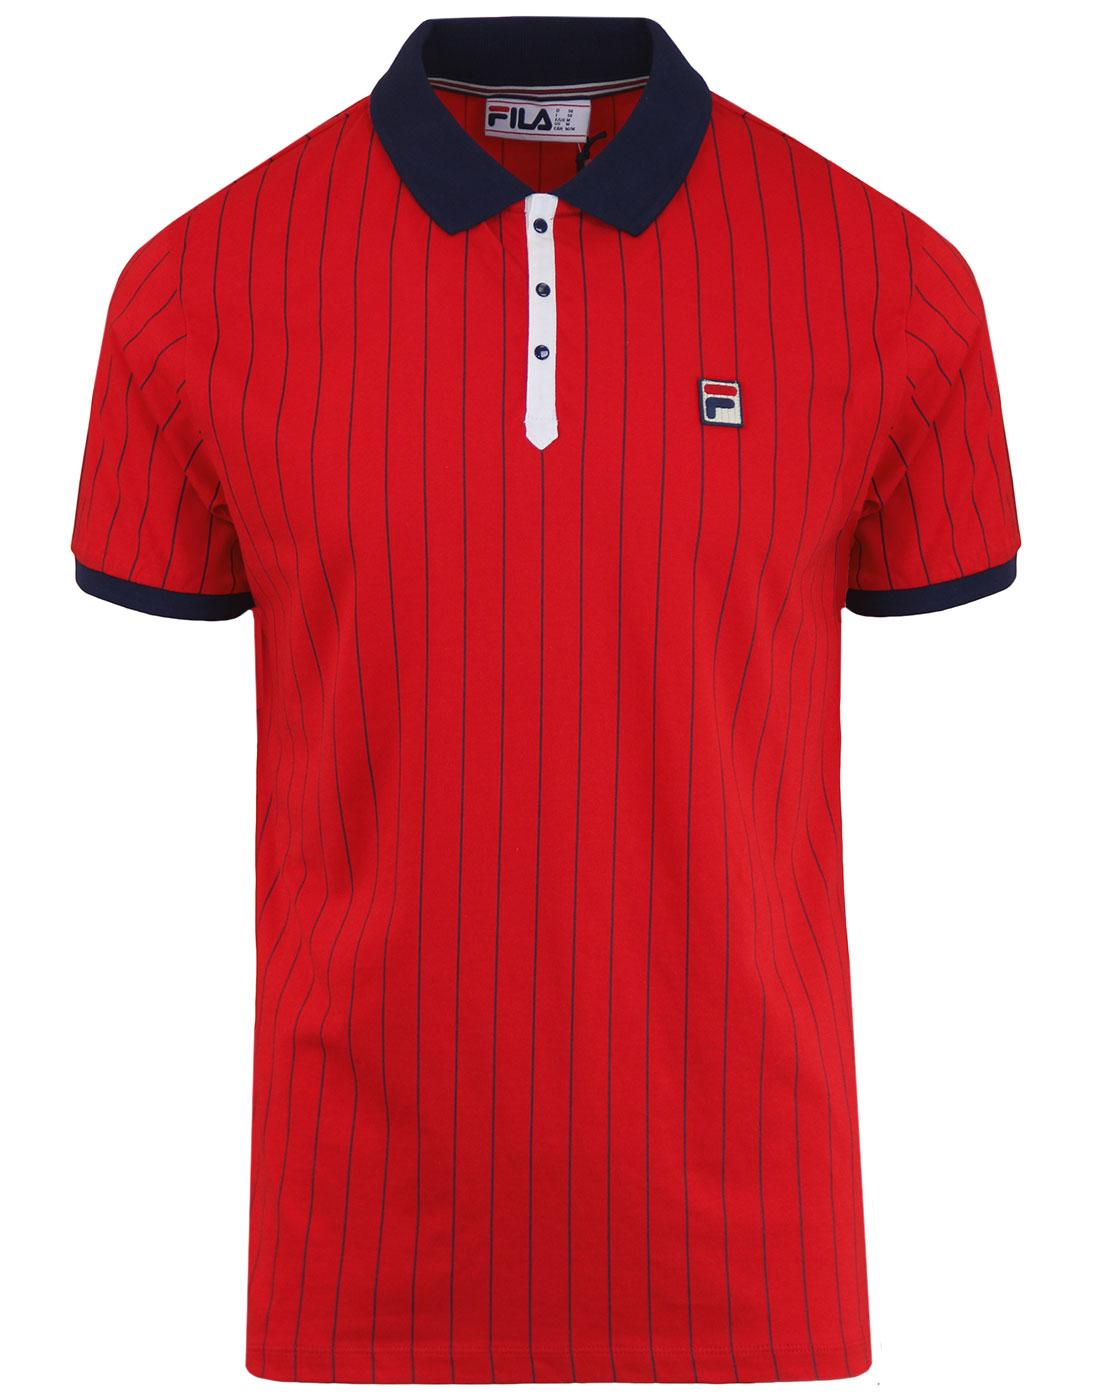 BB1 FILA VINTAGE Retro 70s Borg Tennis Polo Top CR